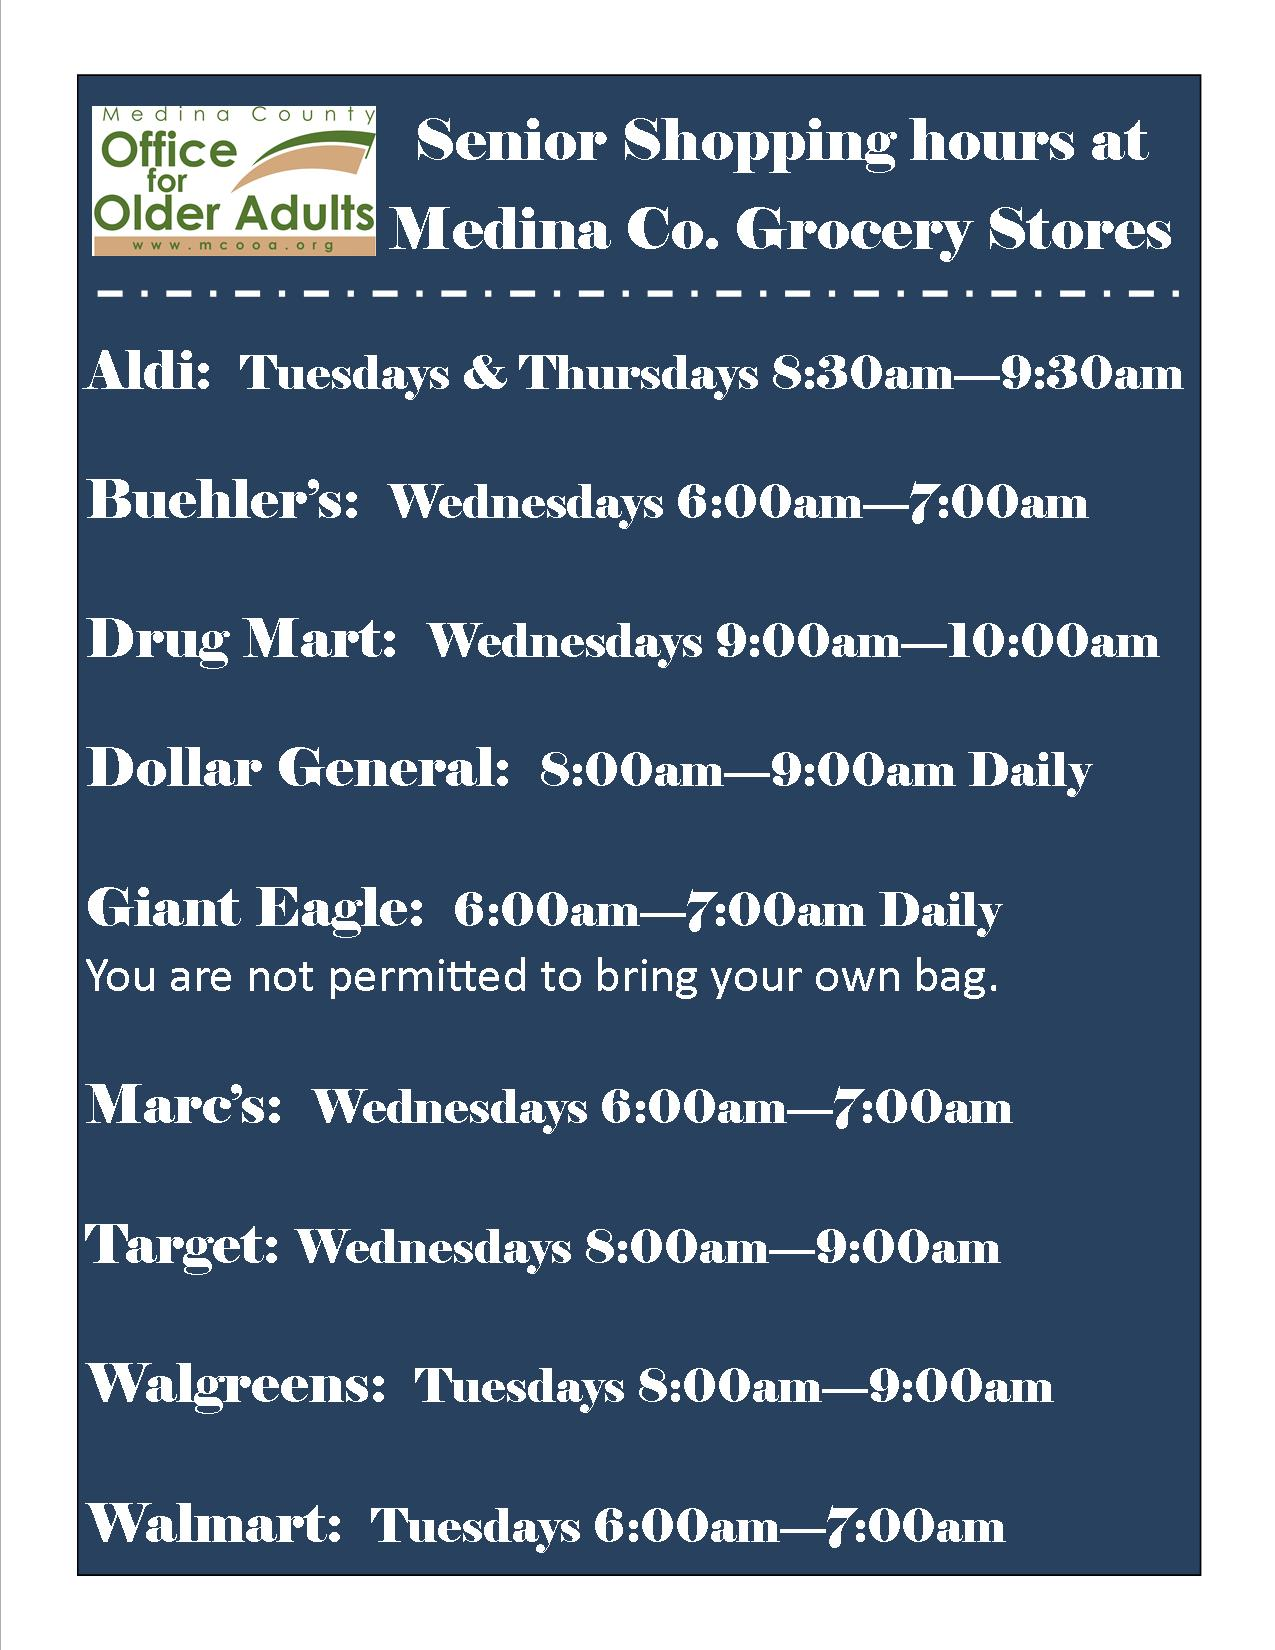 Senior Citizen - Grocery Store Dedicated Shopping Hours